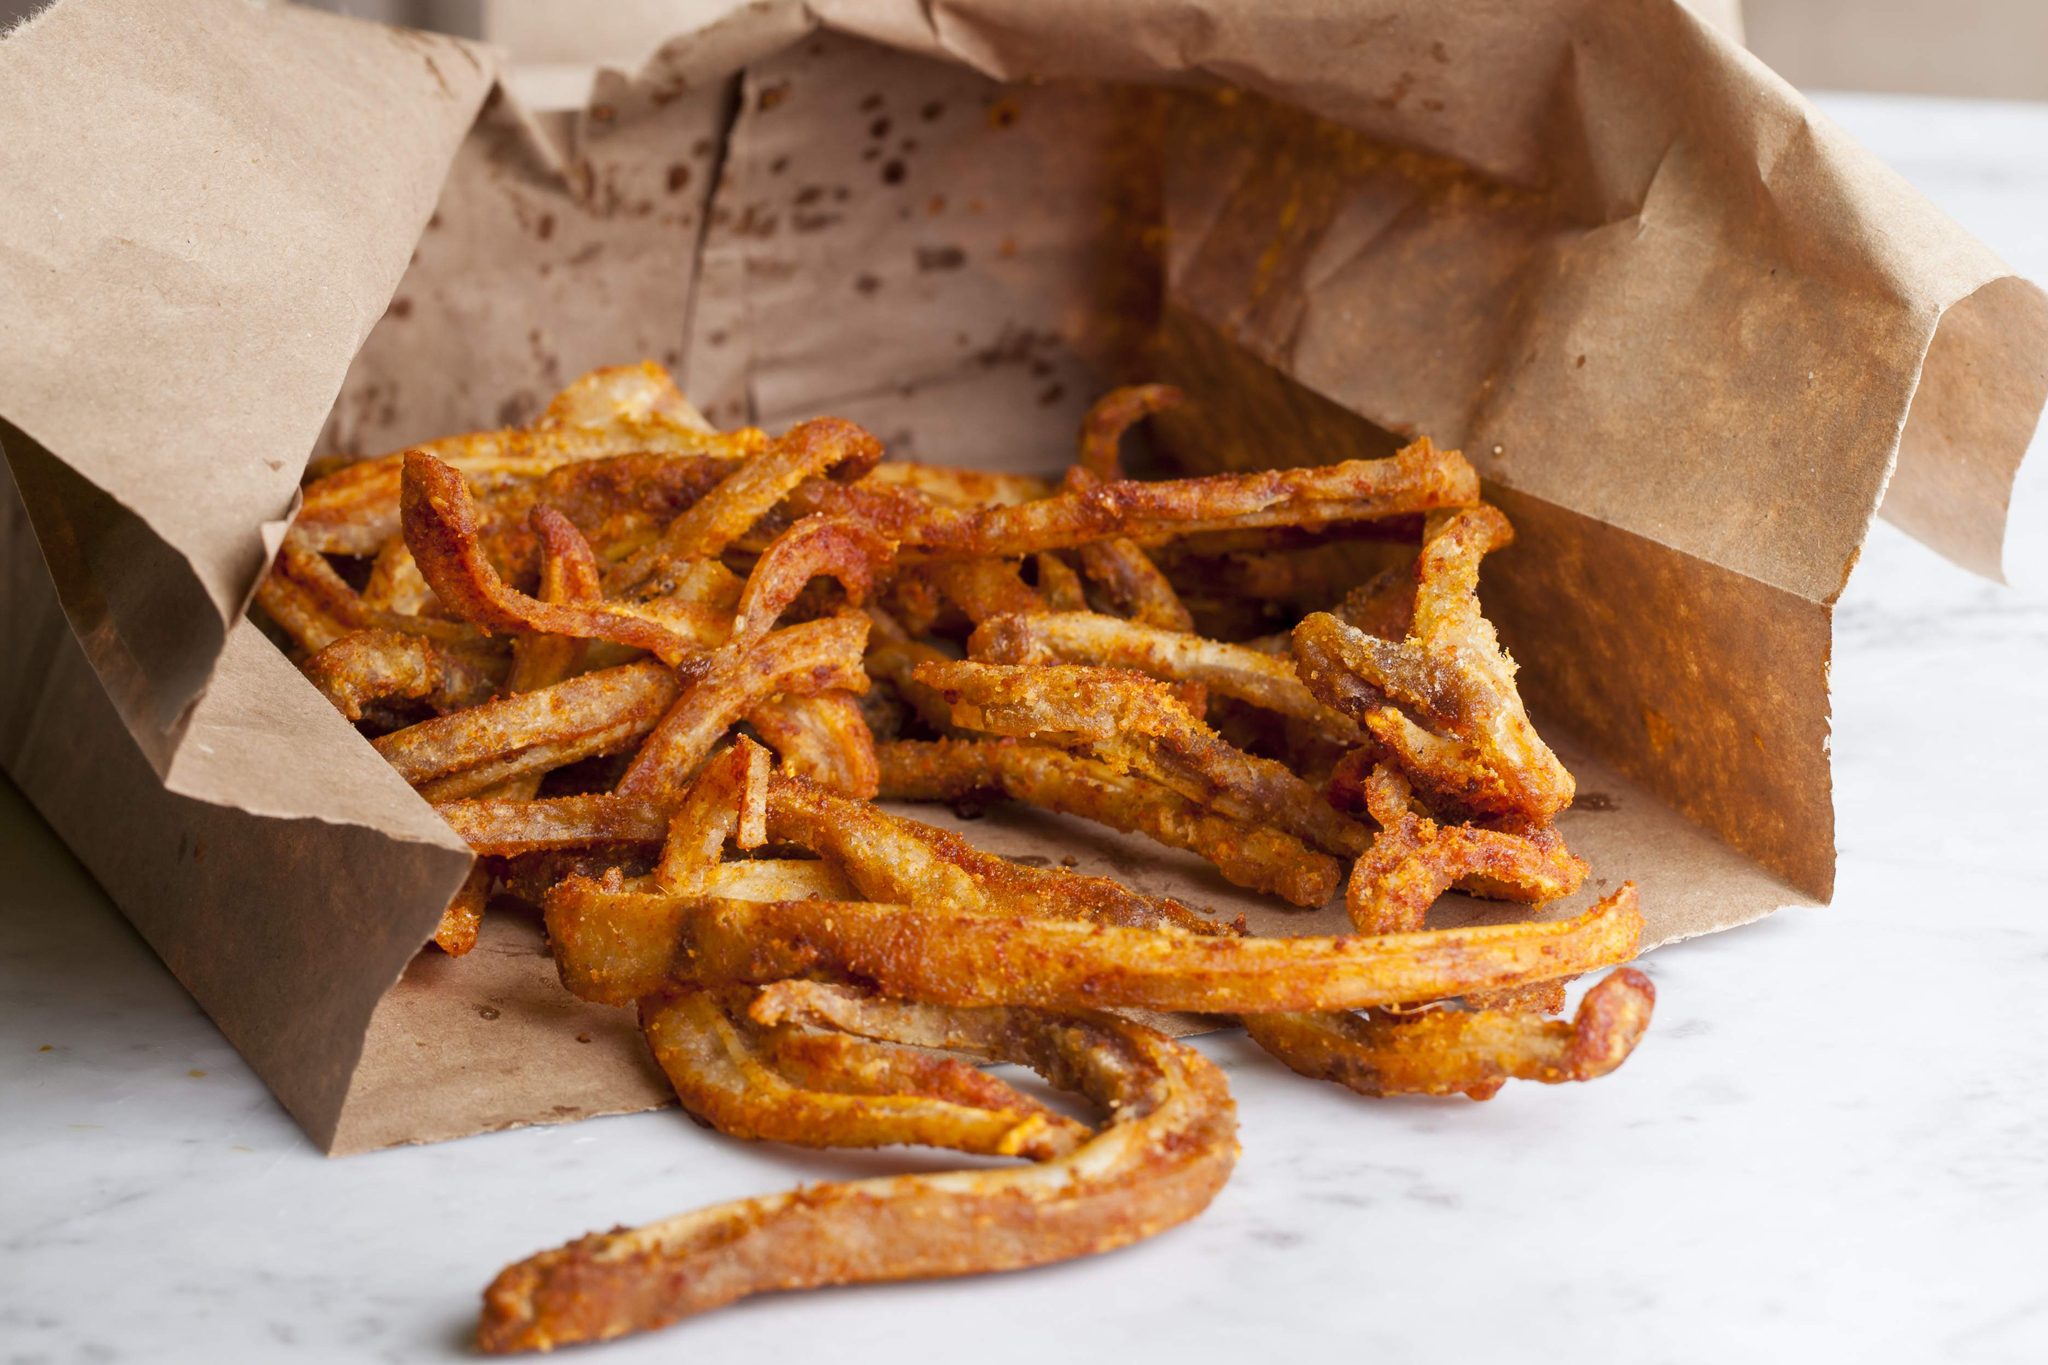 BBQ-spiced crispy pigs' ears at Duck & Waffle